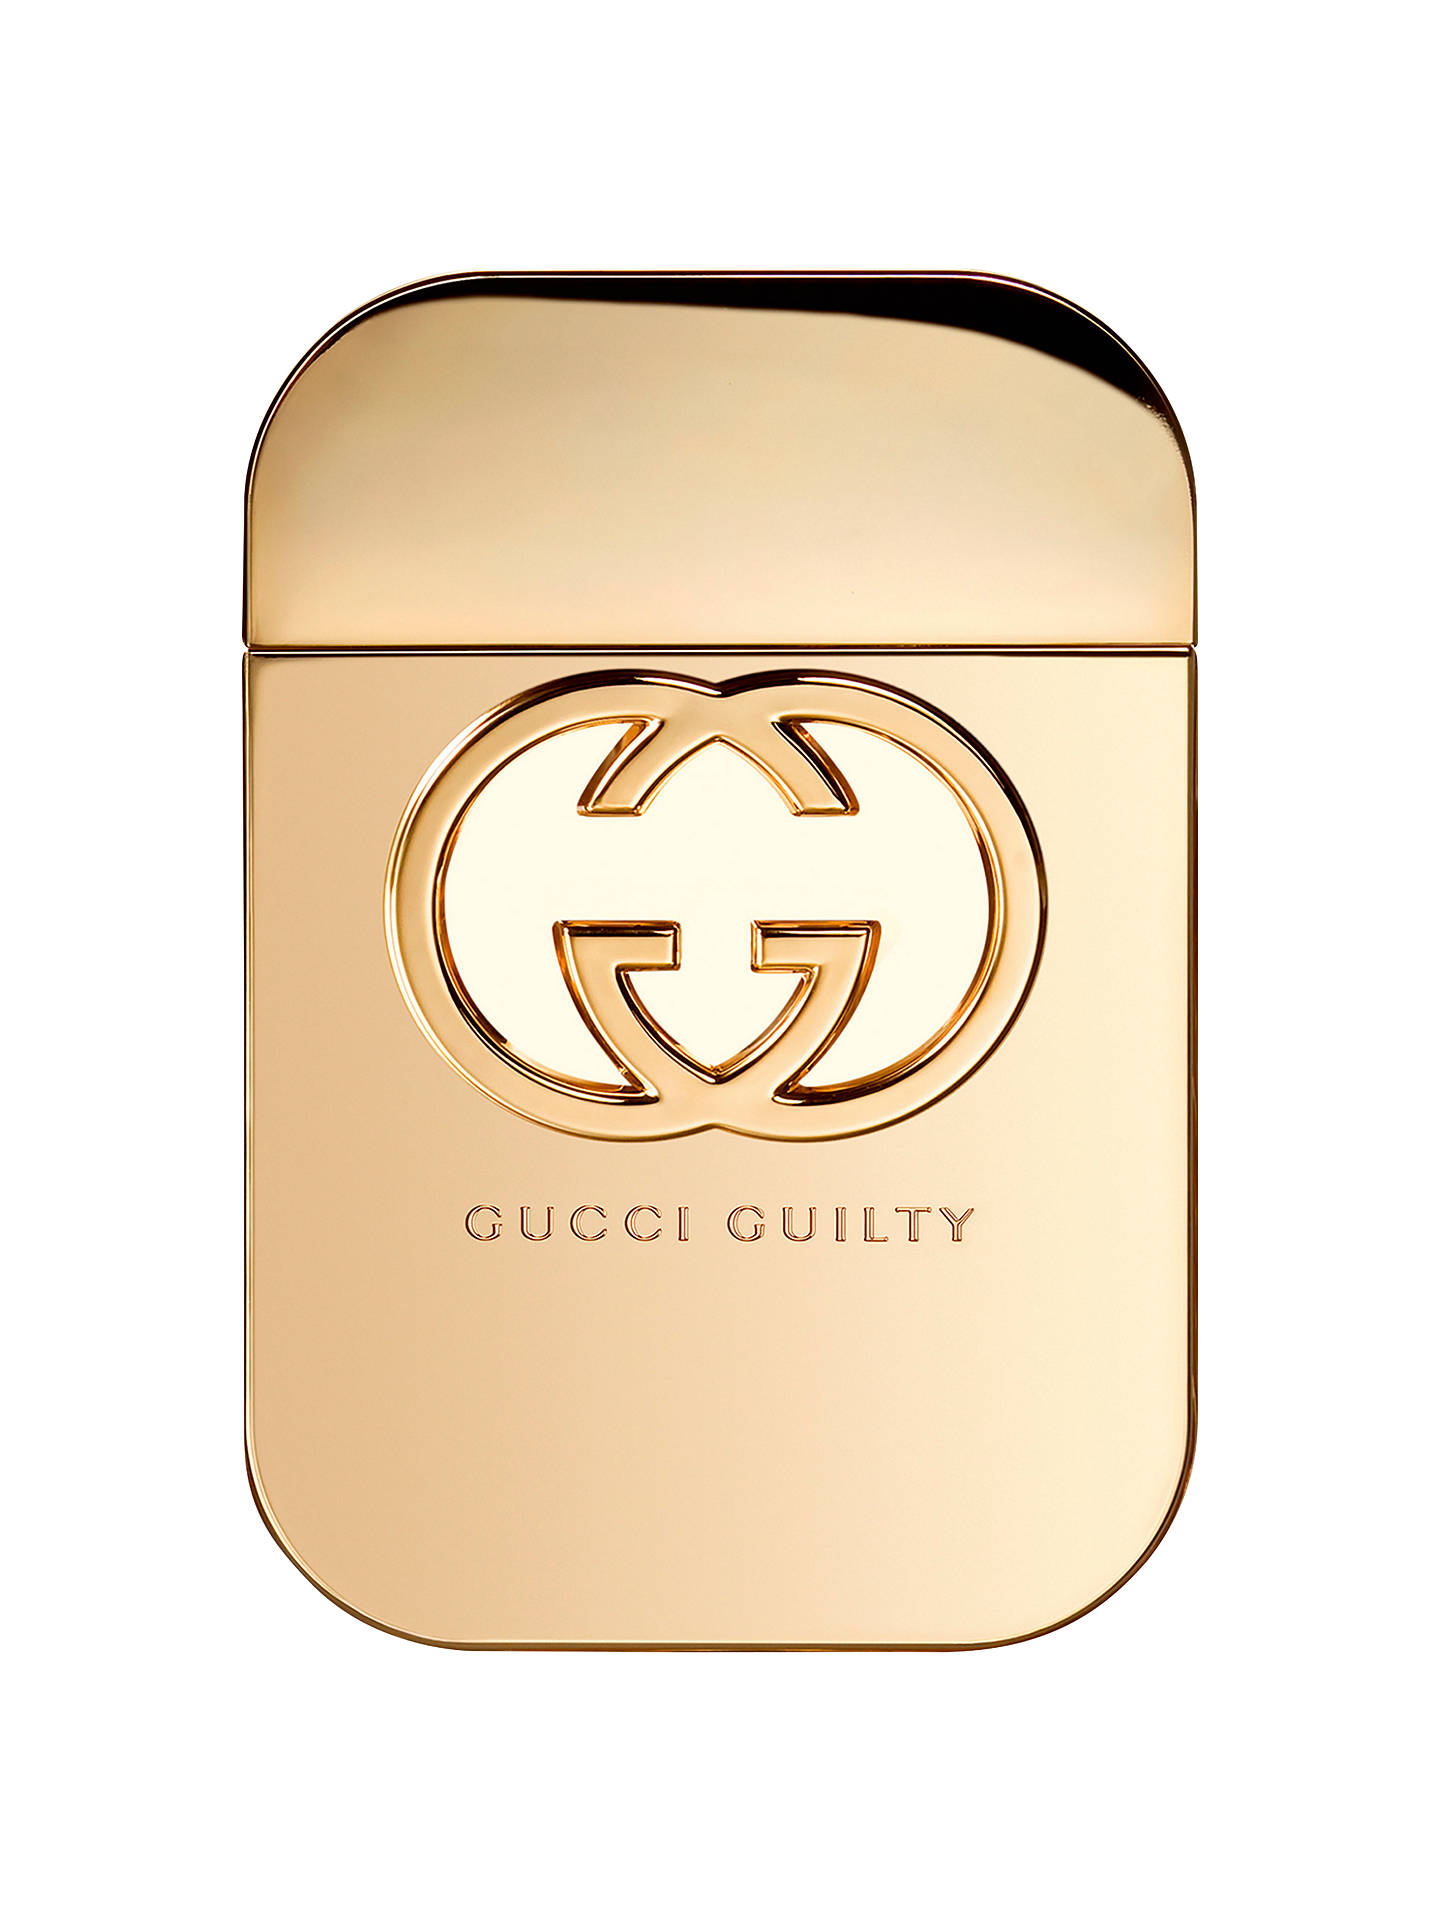 73d24f8cf20 Gucci Guilty Eau de Toilette for Her at John Lewis   Partners